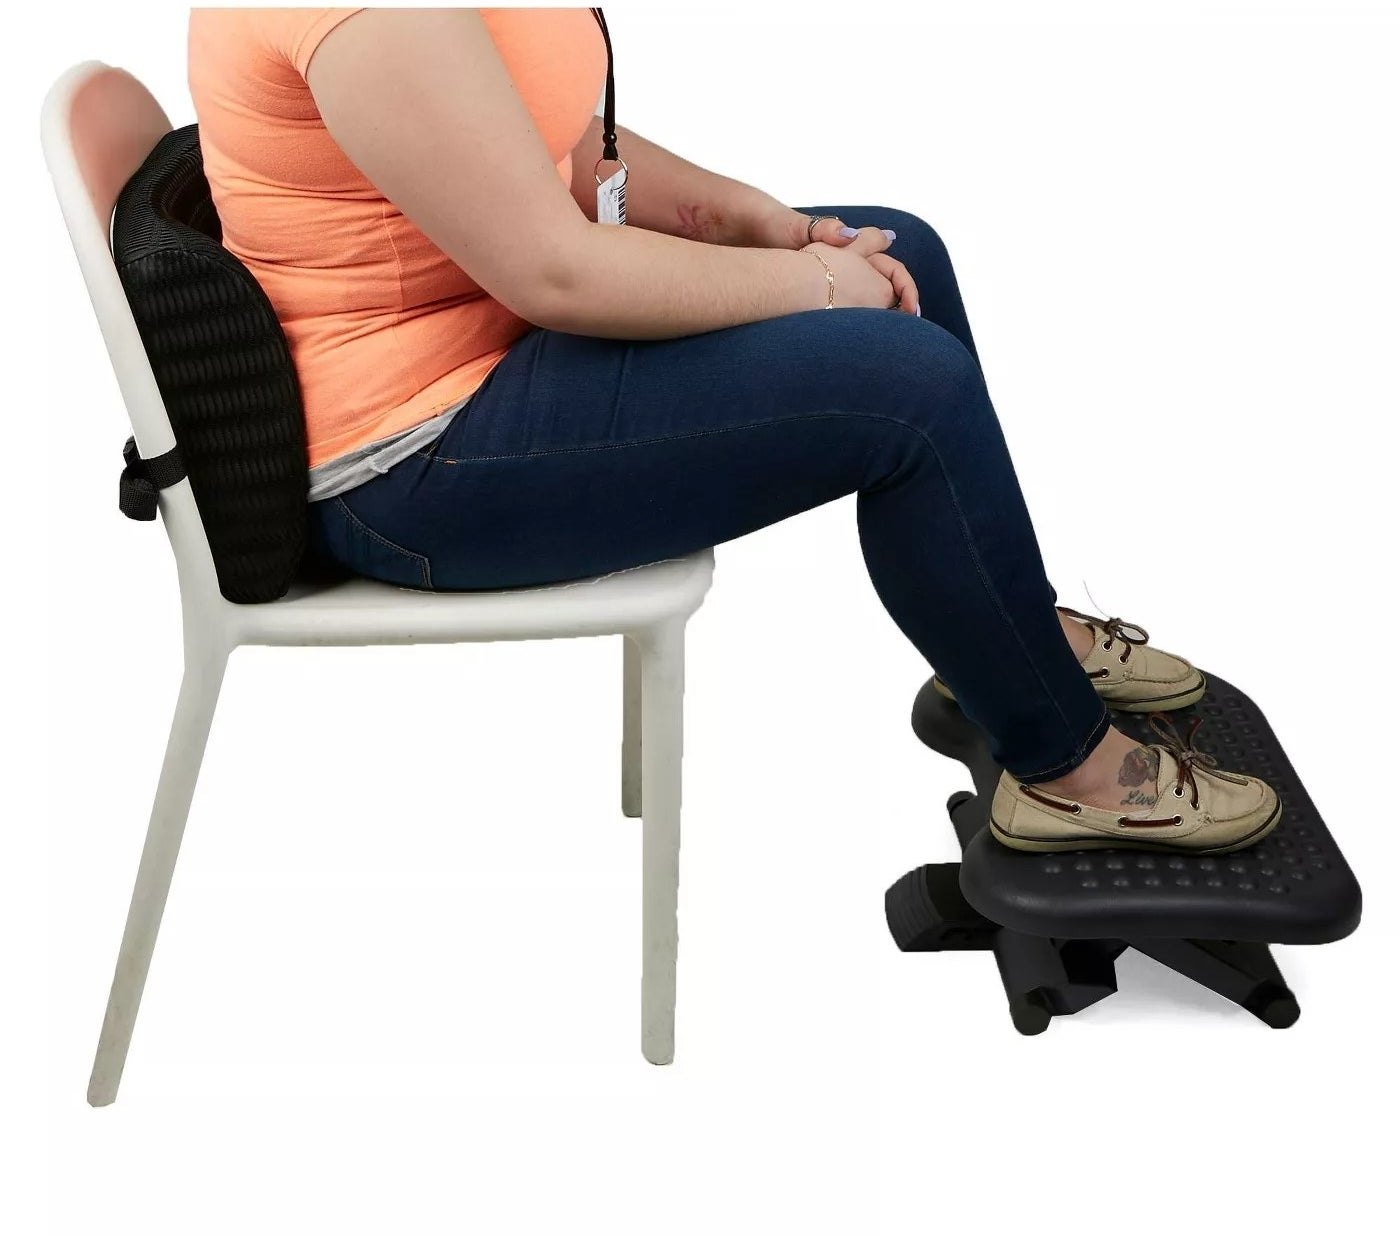 White chair with memory foam back support and adjustable foot rest